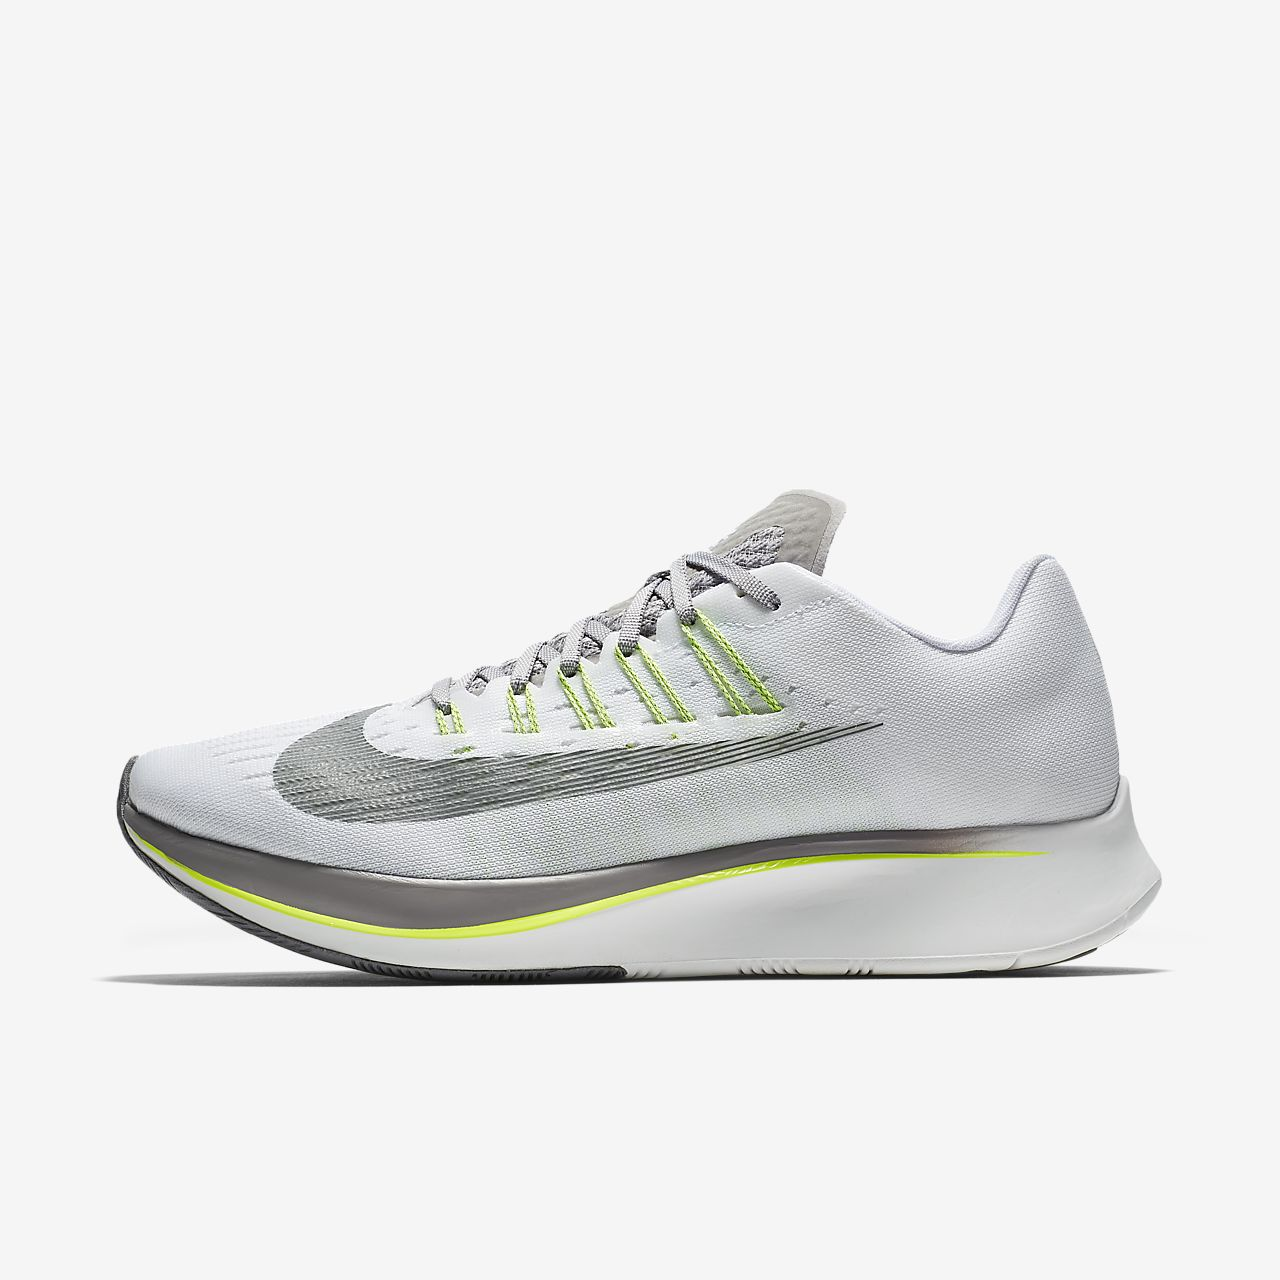 ed7735a84025 Nike Zoom Fly Men s Running Shoe. Nike.com